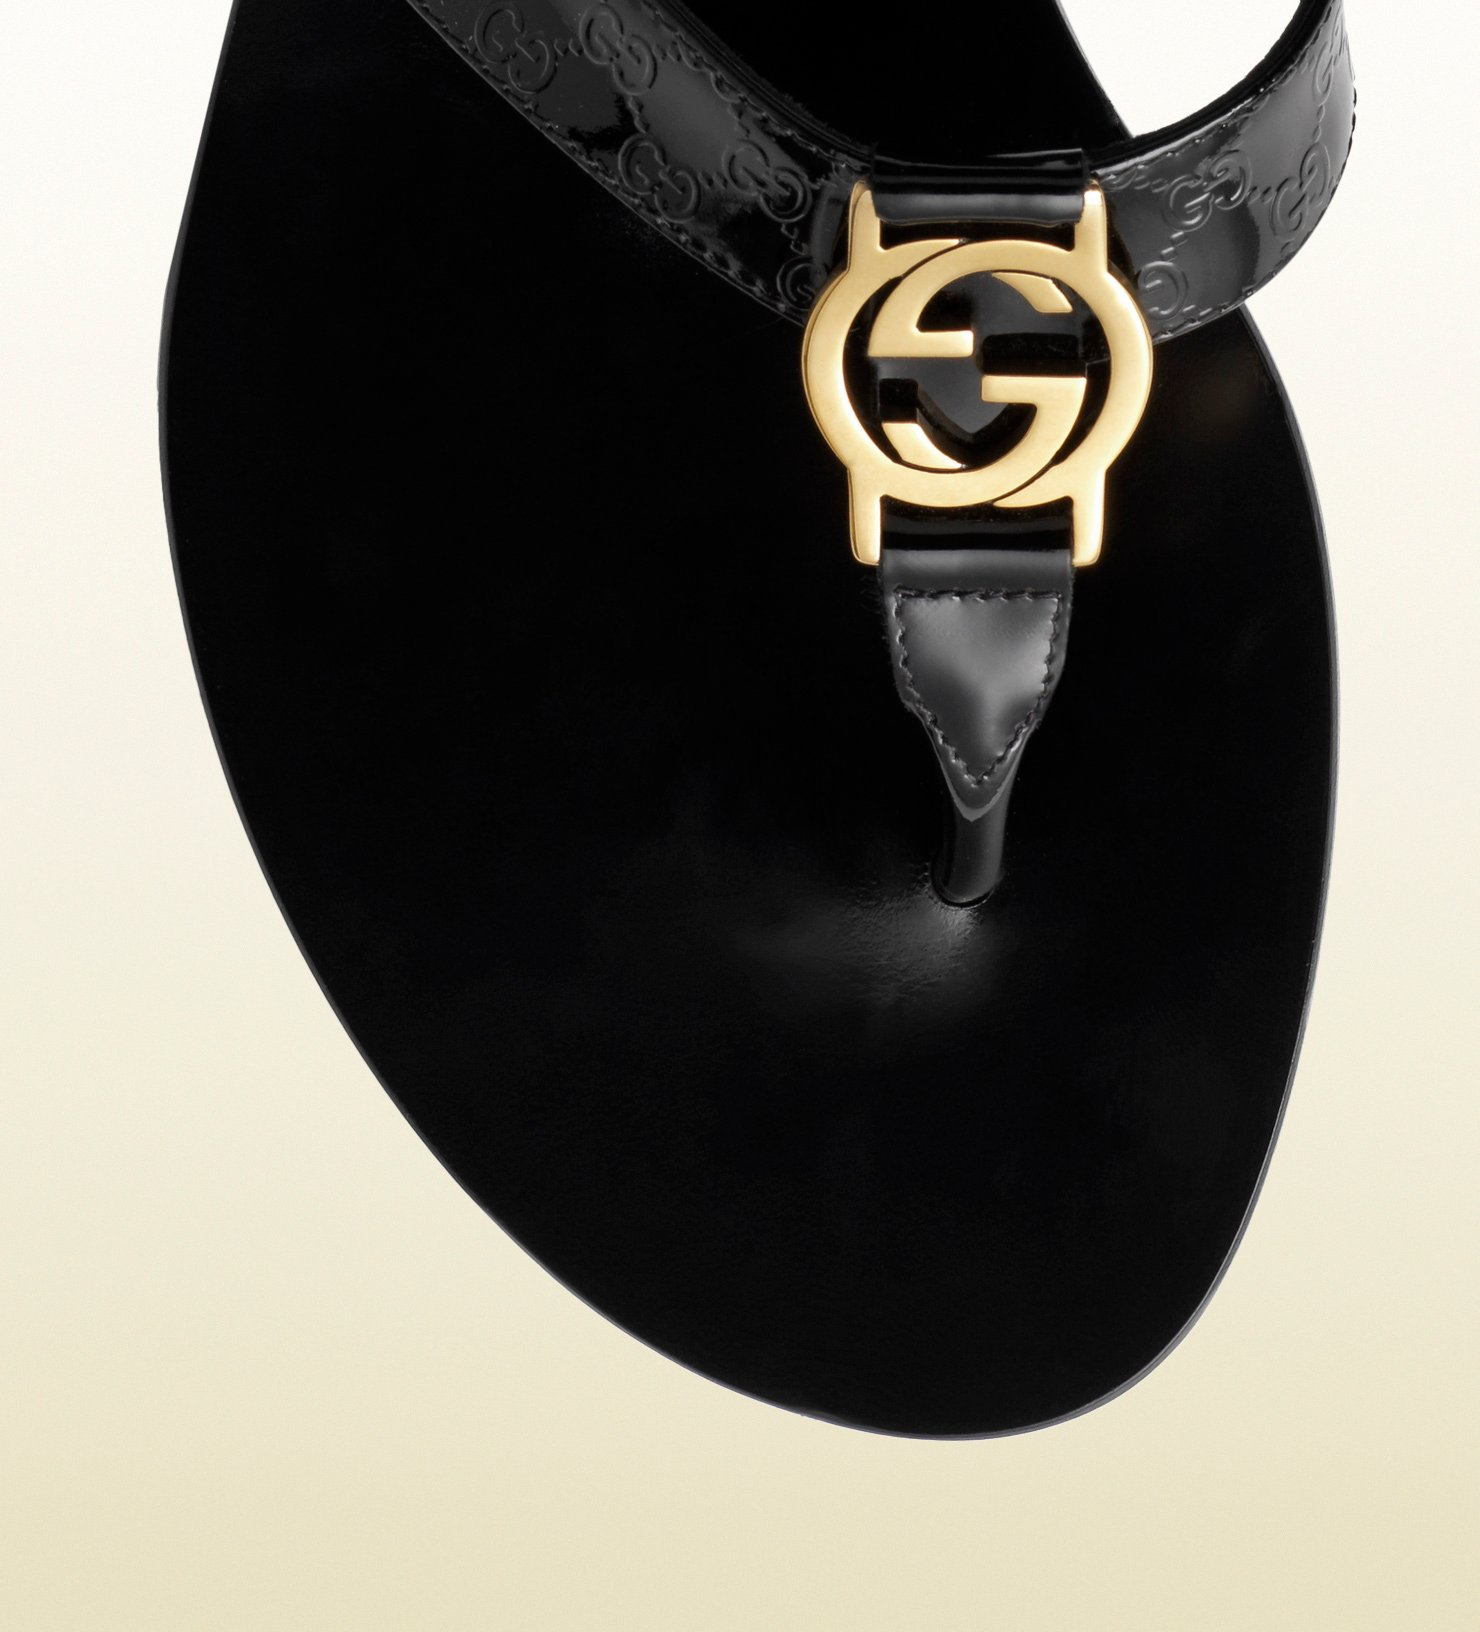 cb4e89327f4 Lyst - Gucci Gg Thong Patent Leather Sandal in Black